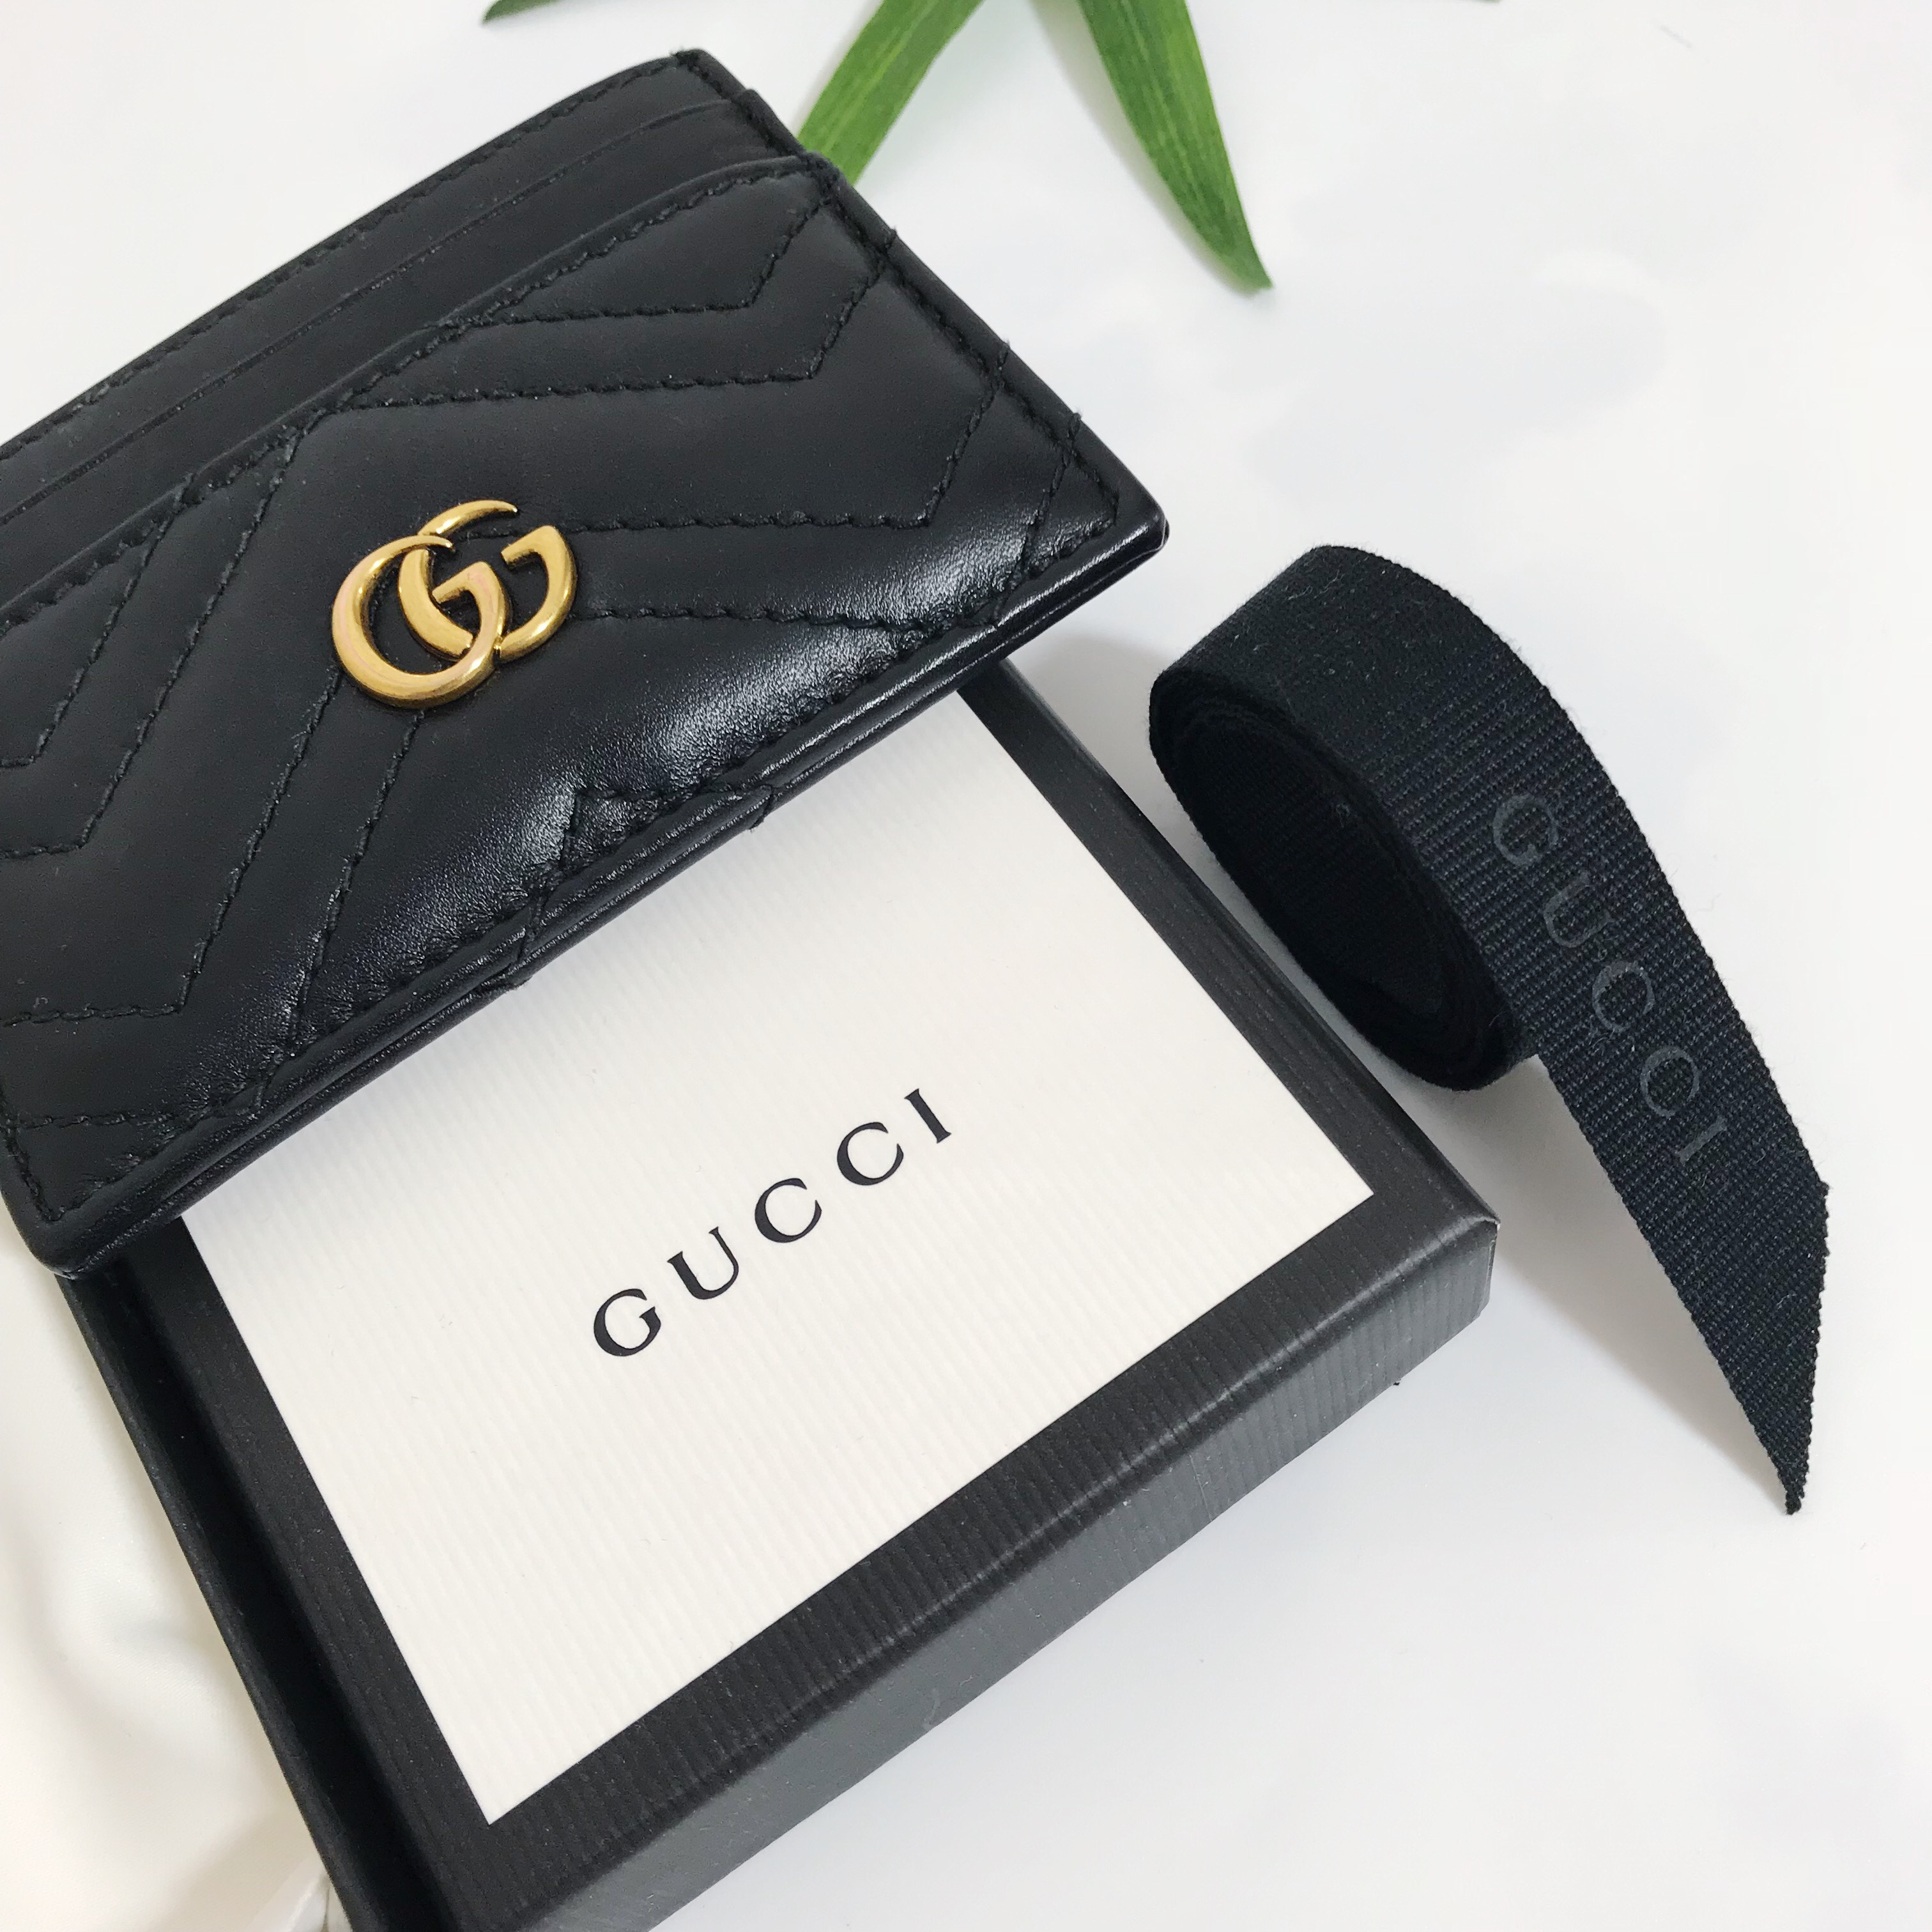 00eabcab9876b GUCCI 🐝 GG Marmont quilted leather cardholder... - Depop